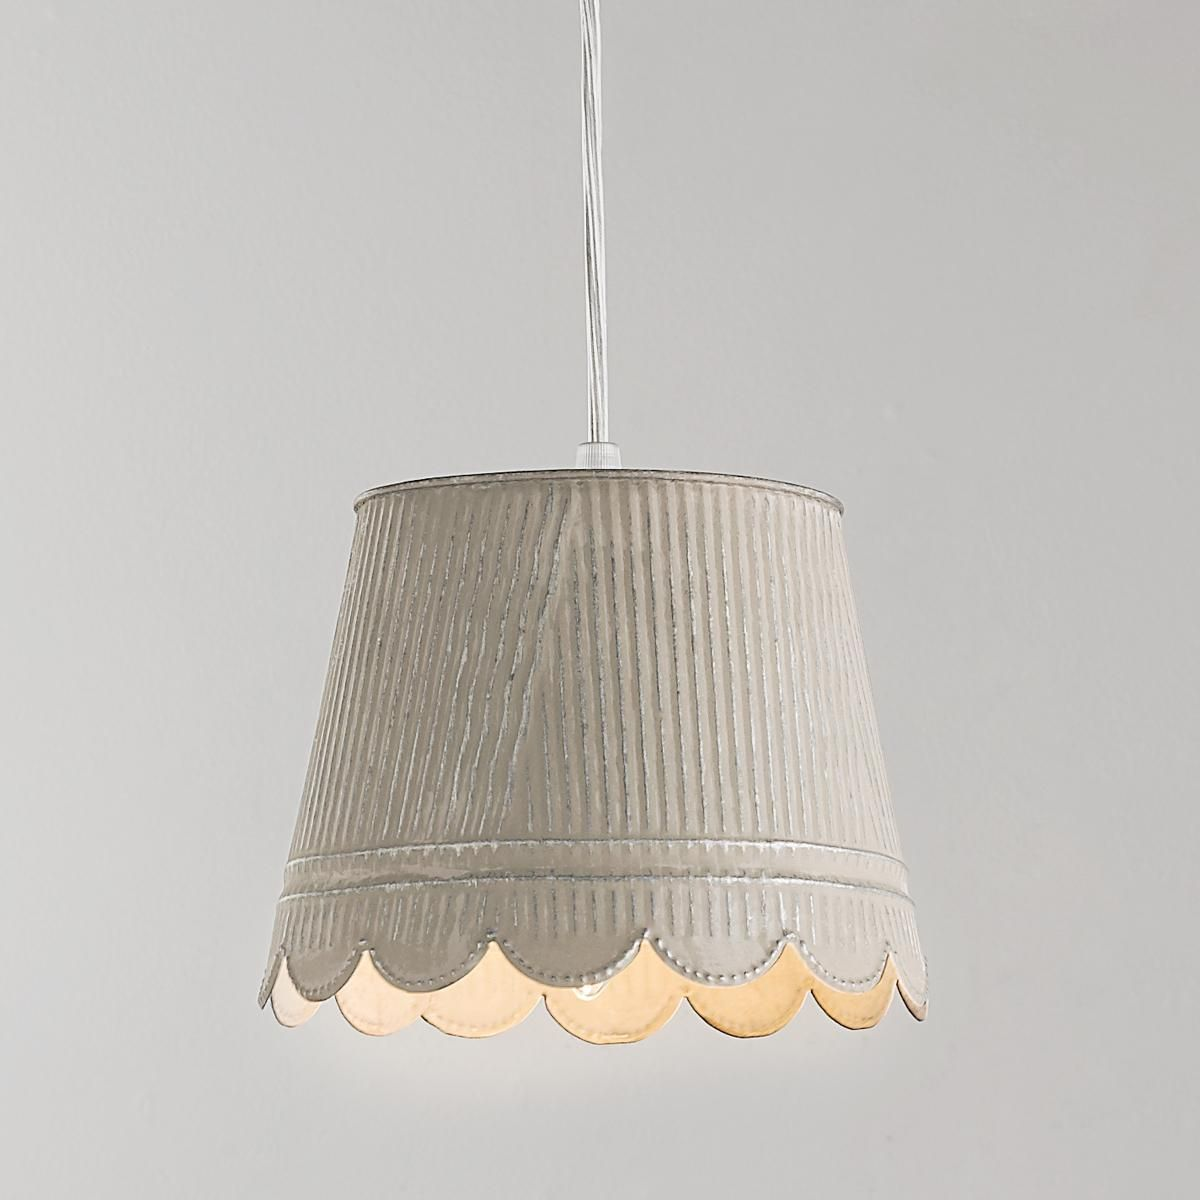 country chic lighting. Scallop Tin Pendant Light From Shabby Chic To Industrial Style, This Galvanized Adds Charm And Back-to-nature Appeal. Country Lighting E